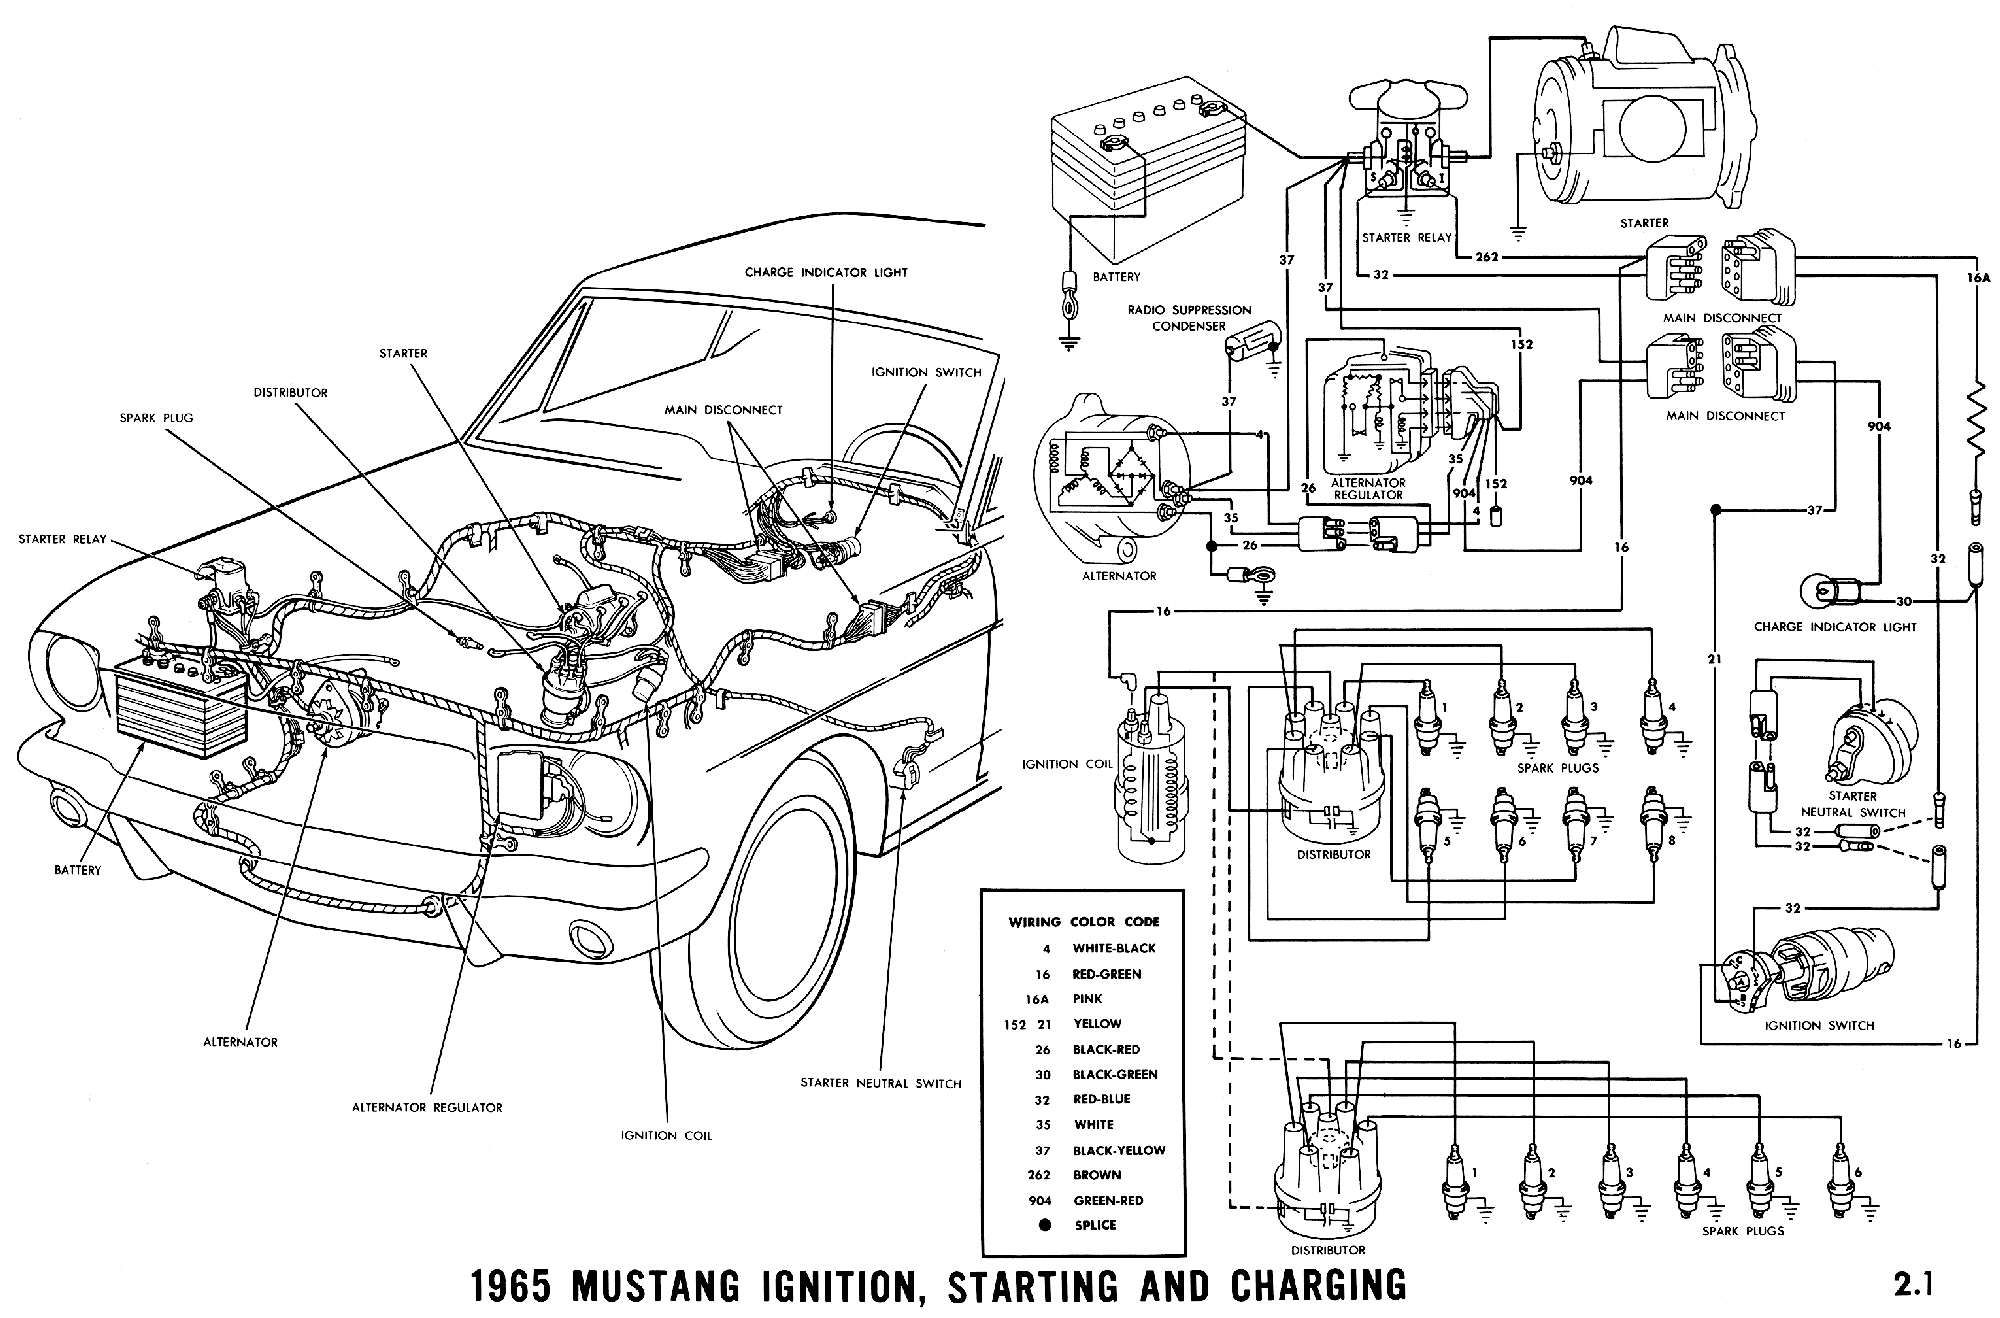 [SCHEMATICS_4US]  1965 Mustang Wiring Diagrams - Average Joe Restoration | Mustang engine,  1965 mustang, Classic mustang | 1966 Mustang Color Wiring Diagram |  | Pinterest